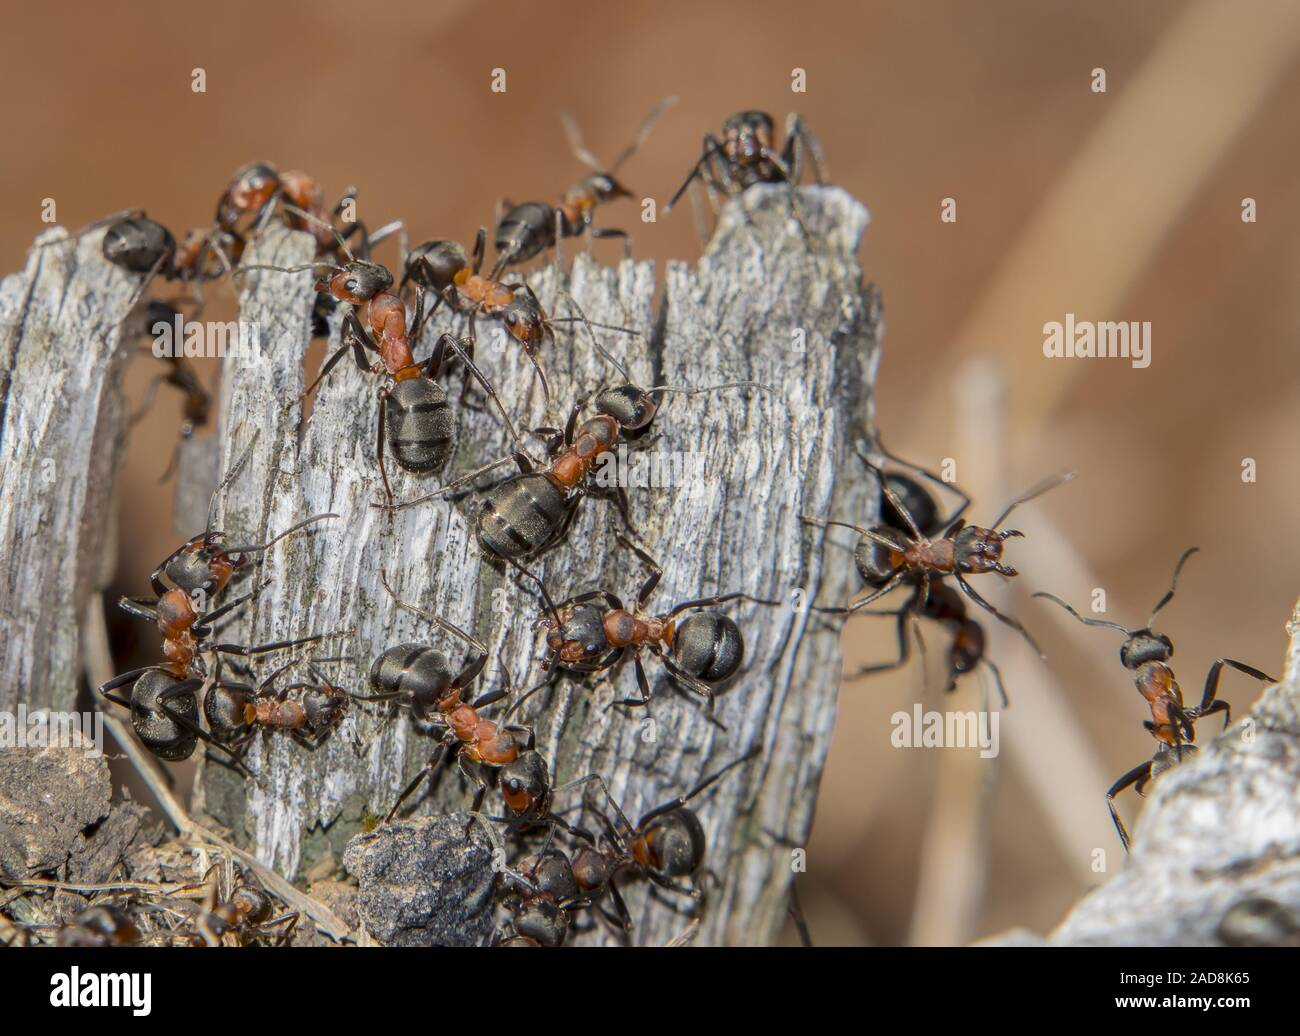 Red wood ant 'Formica rufa' Stock Photo